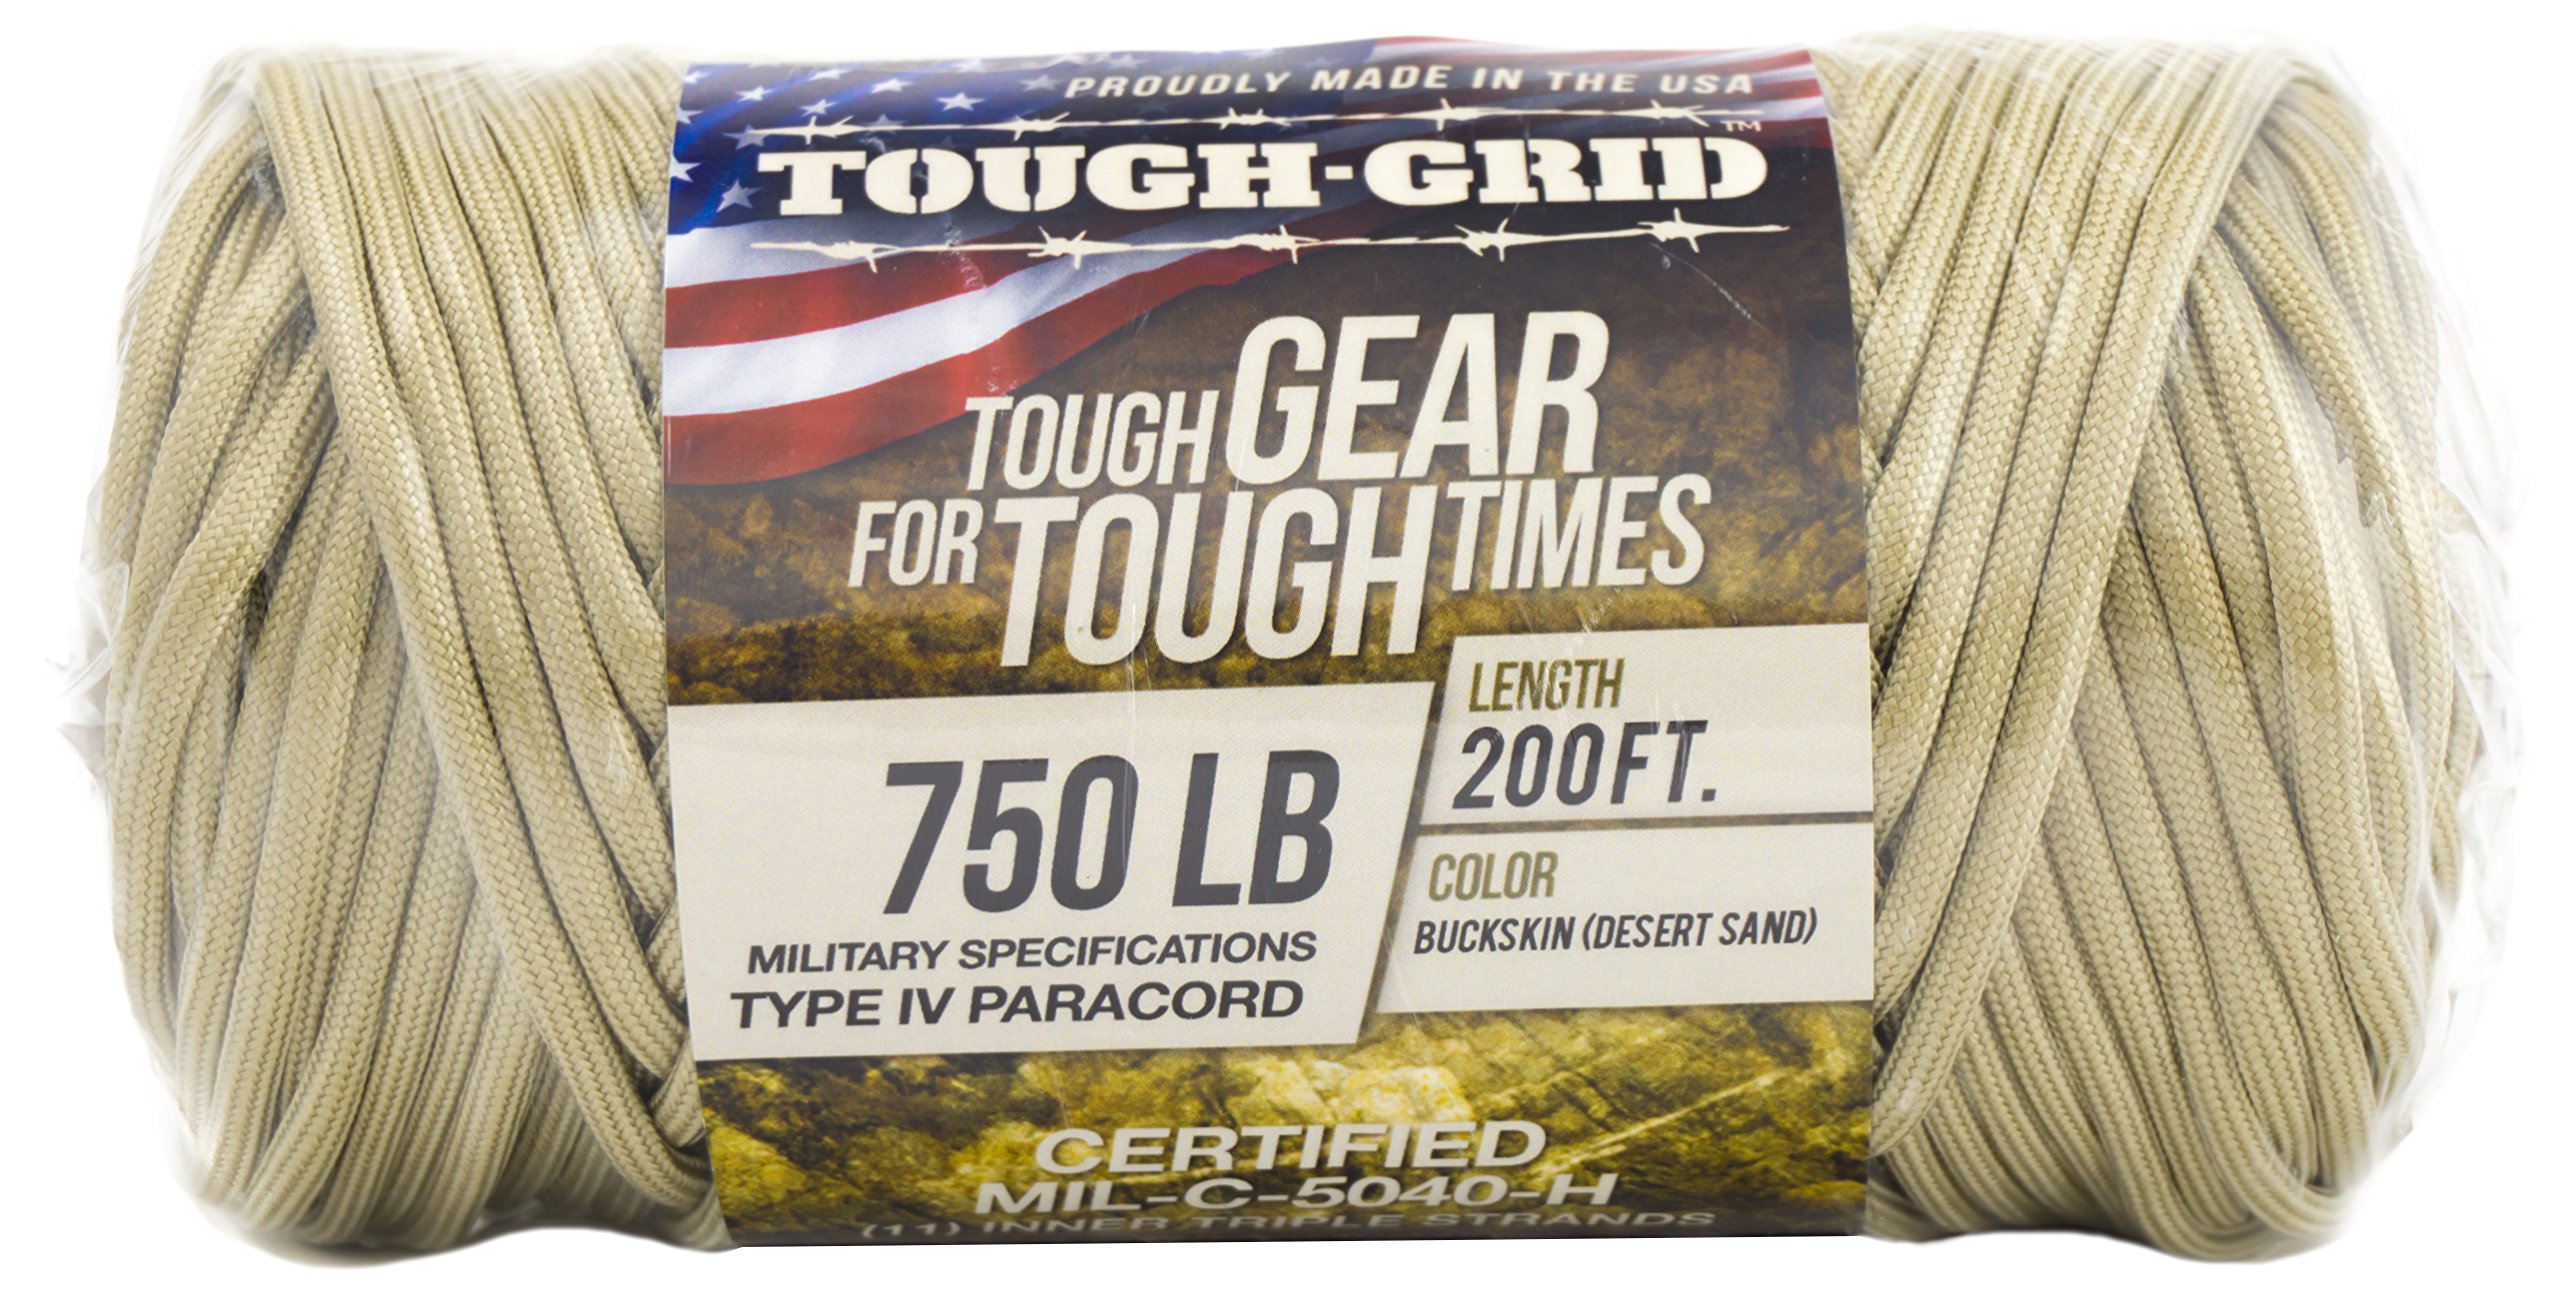 TOUGH-GRID 750lb Buckskin (Desert Sand) Paracord/Parachute Cord - Genuine Mil Spec Type IV 750lb Paracord Used by The US Military (MIl-C-5040-H) - 100% Nylon - Made in The USA. 200Ft. - Buckskin by TOUGH-GRID (Image #9)